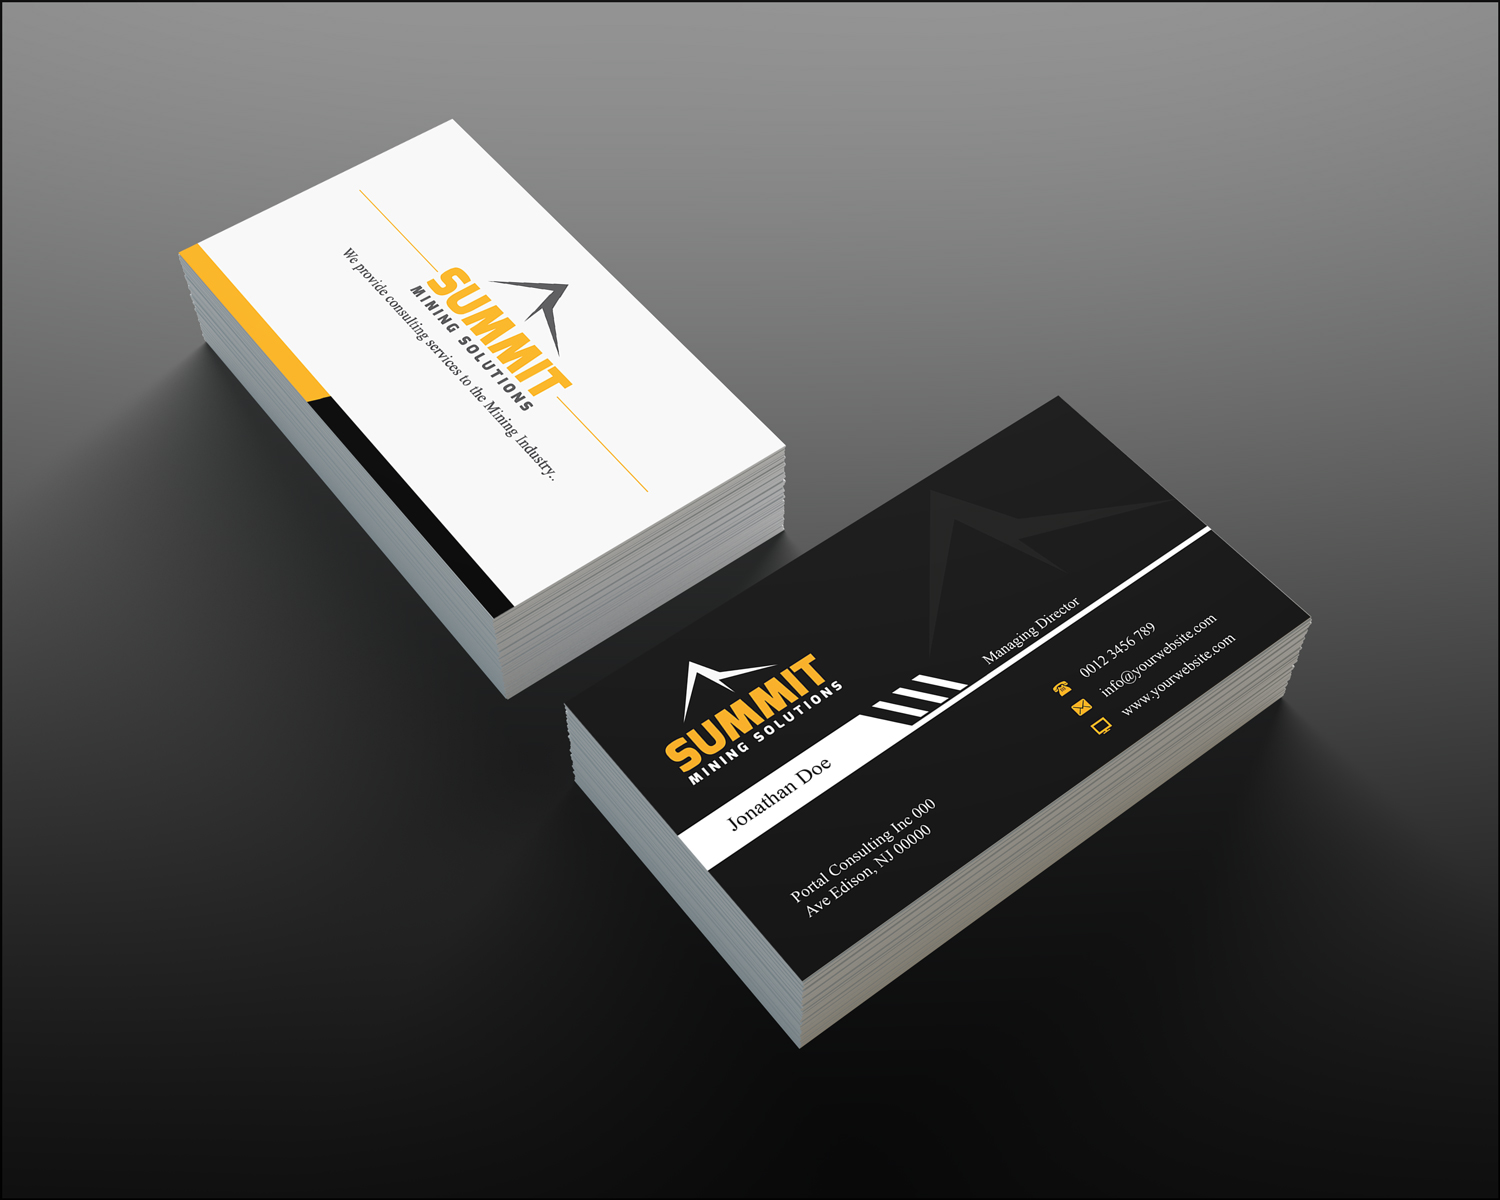 Mining business card design for a company by creation lanka design business card design by creation lanka for this project design 4675256 colourmoves